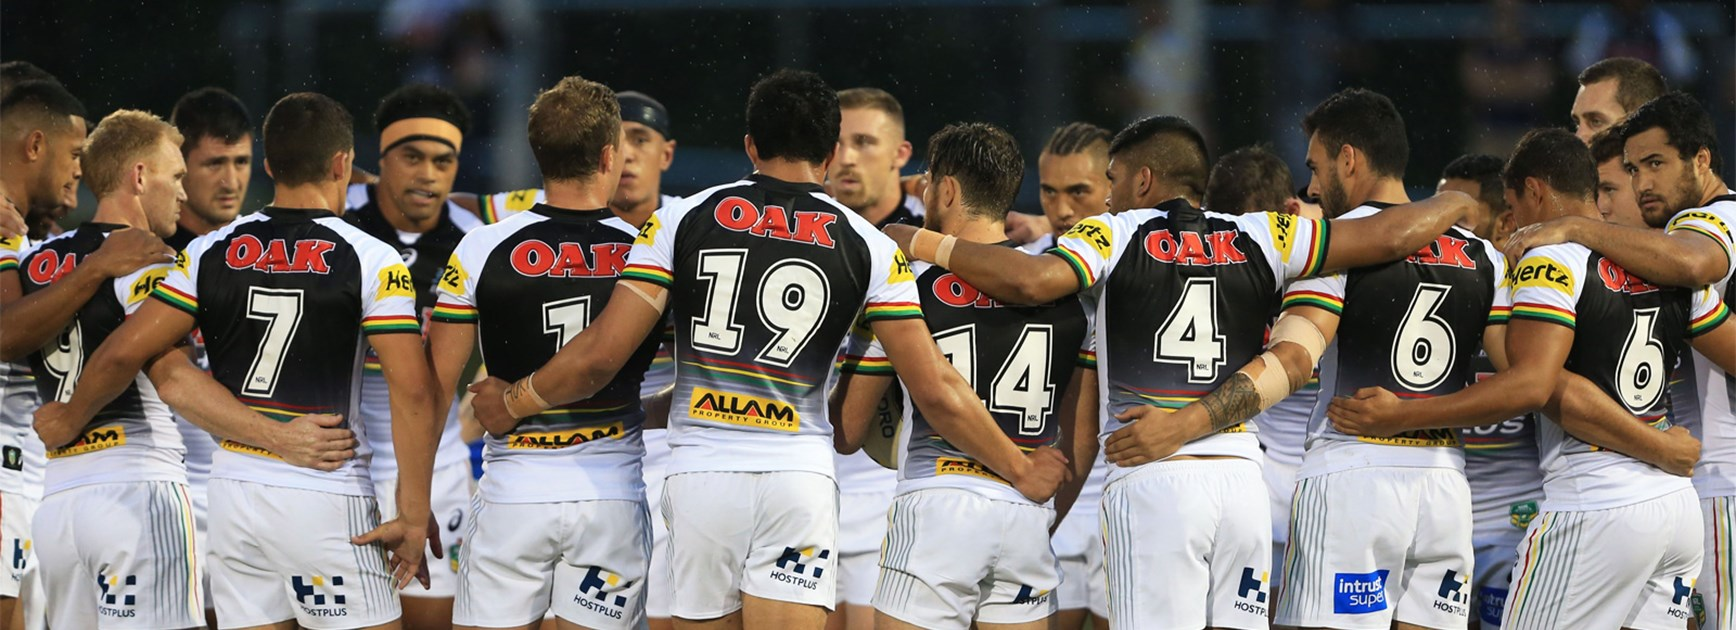 The Panthers go into a huddle ahead of their trial win over Parramatta.